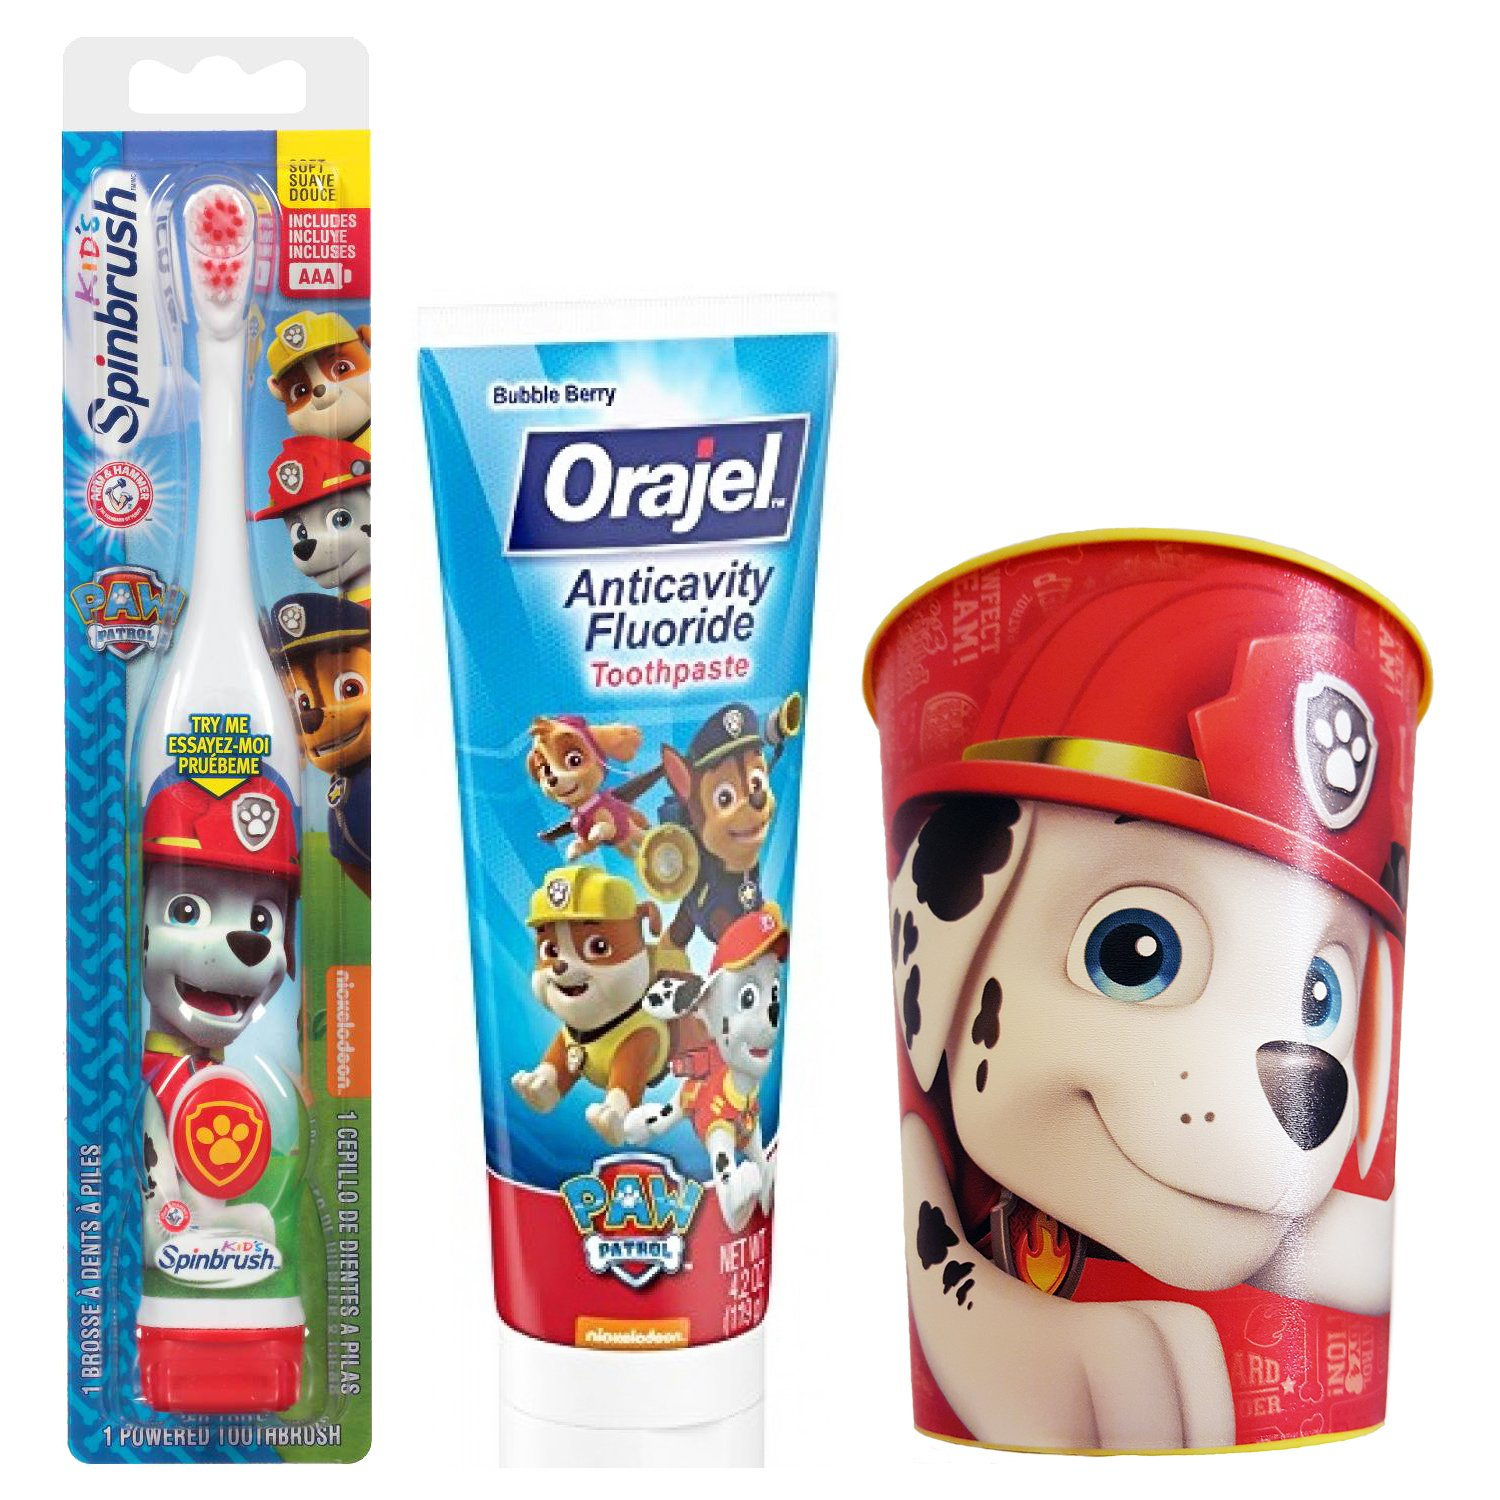 Paw Patrol Marshall Toothbrush & Toothpaste Bundle: 3 Items - Spinbrush Toothbrush, Orajel Bubble Berry Toothpaste, Kids Character Rinse Cup by Kids Marshall Dental Kit (Image #1)